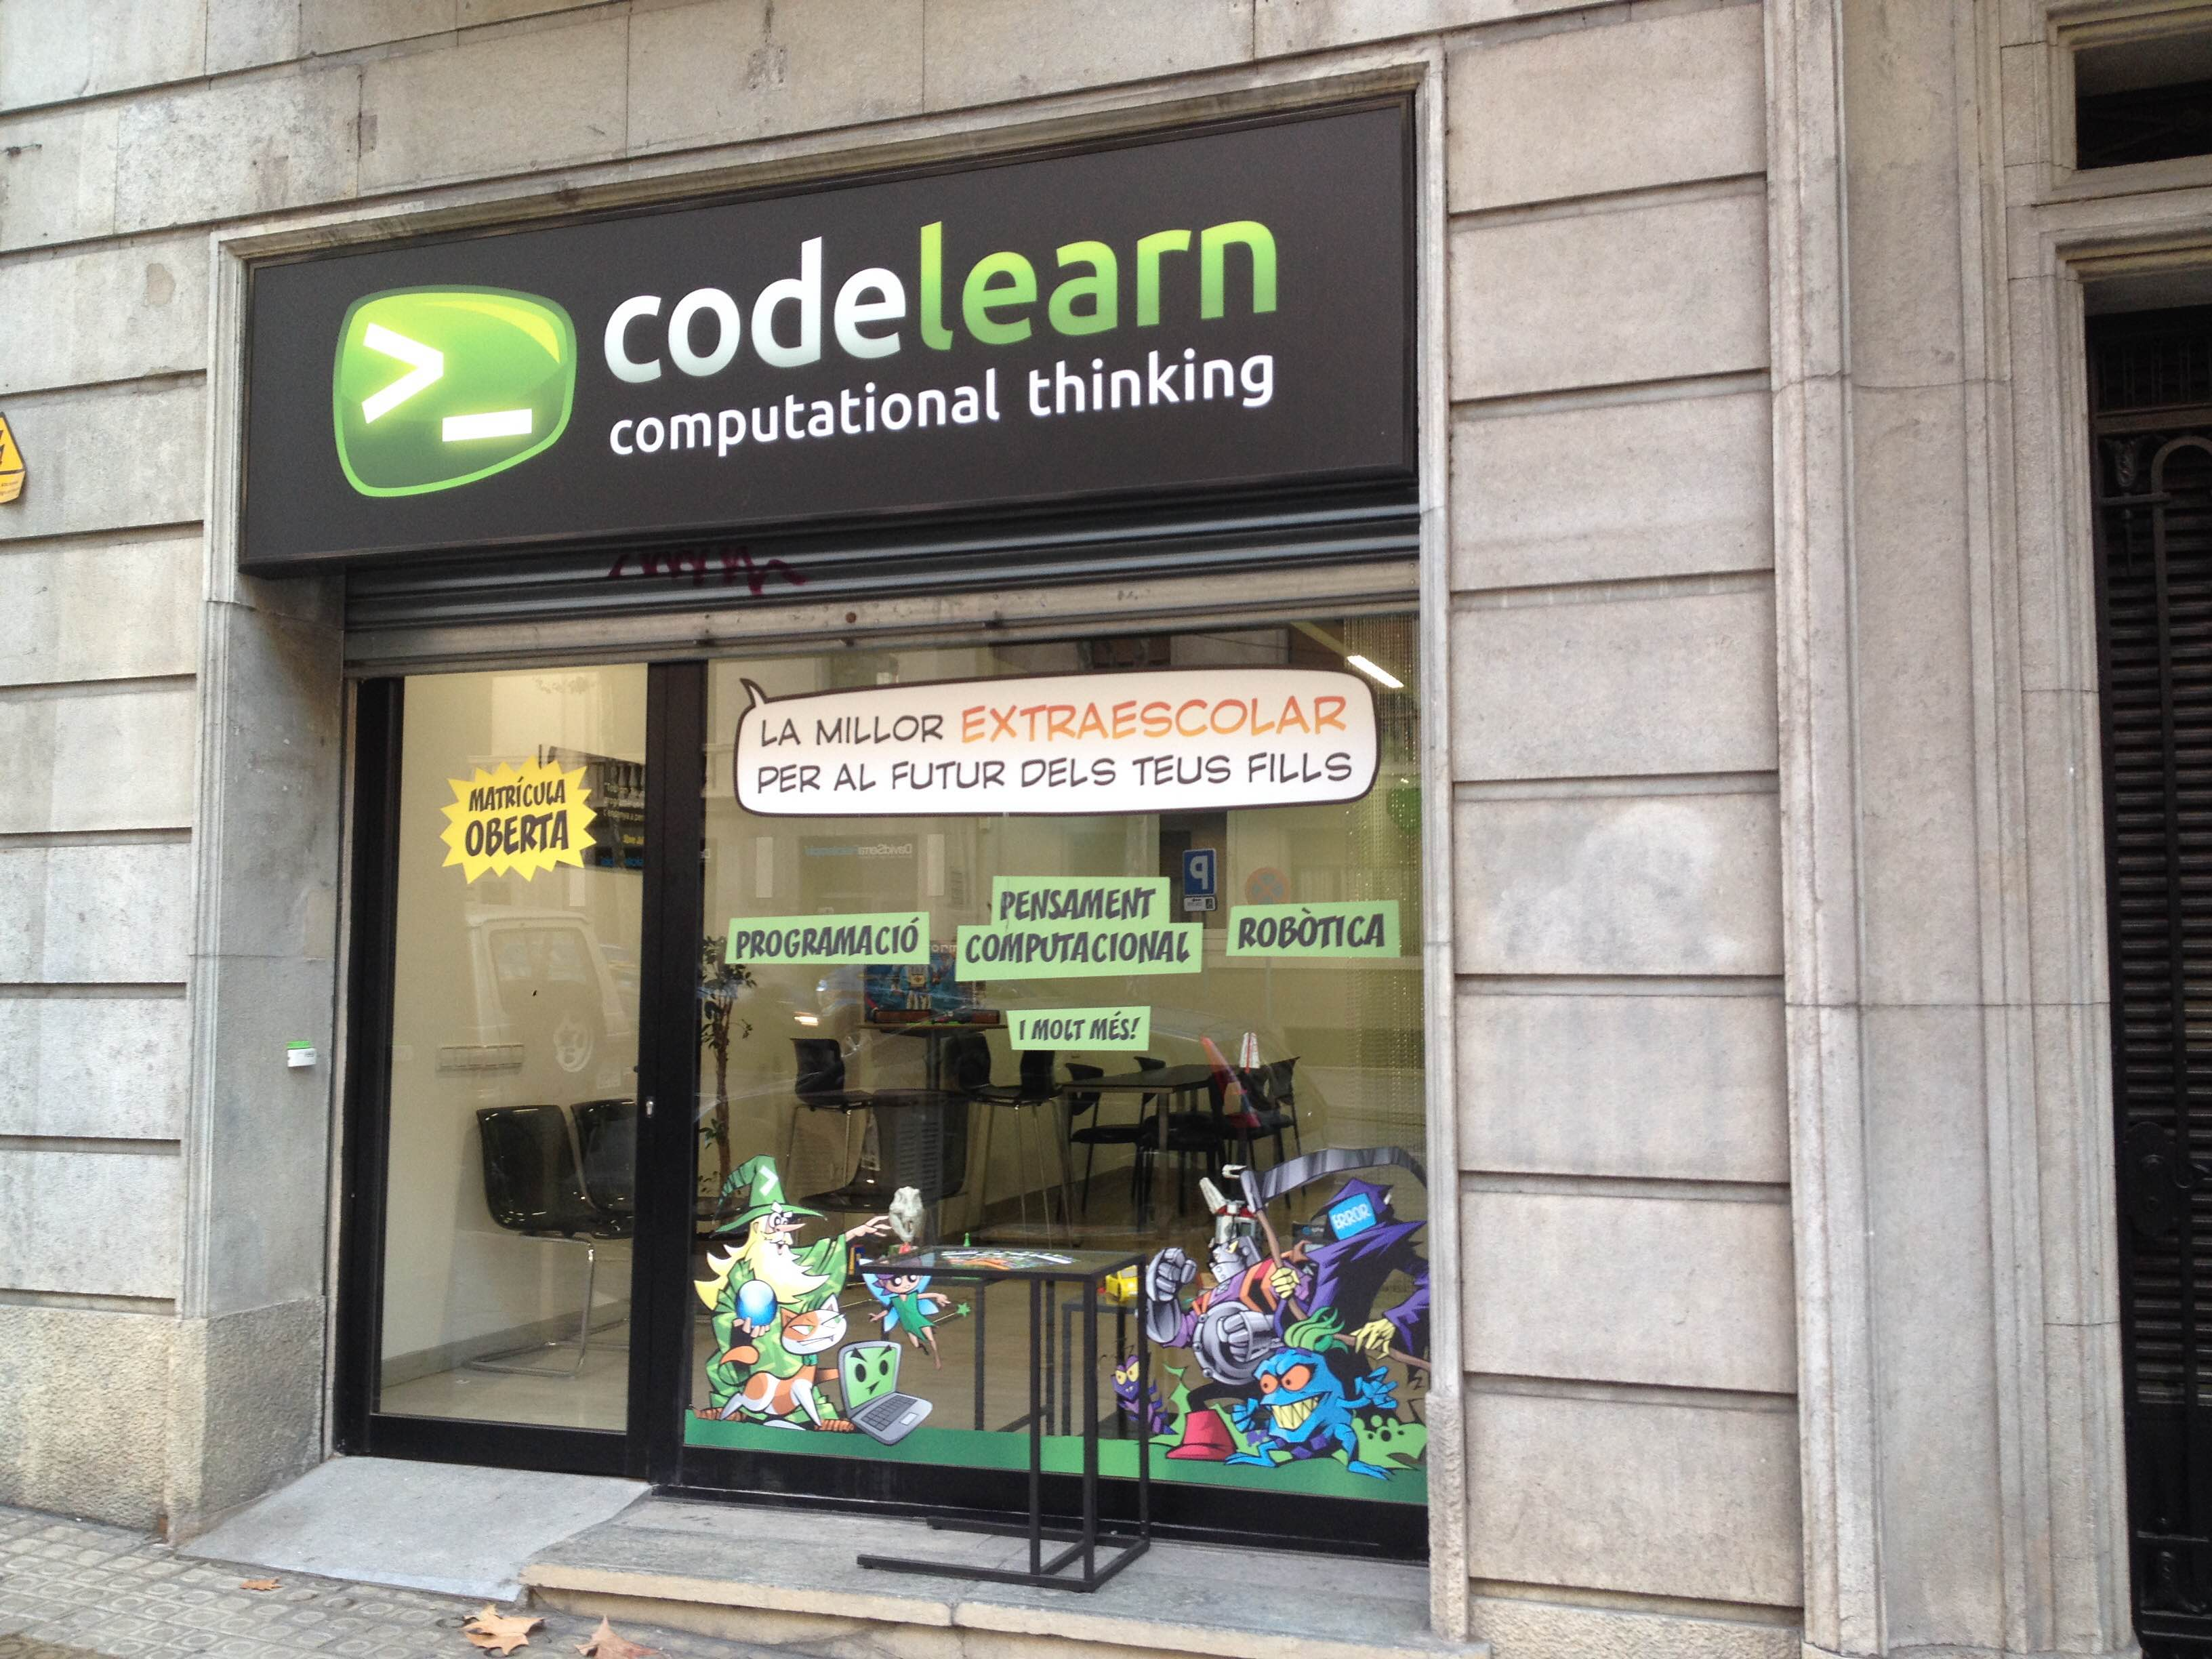 Codelearn is the best after-school program to learn programming, robotics and computational thinking